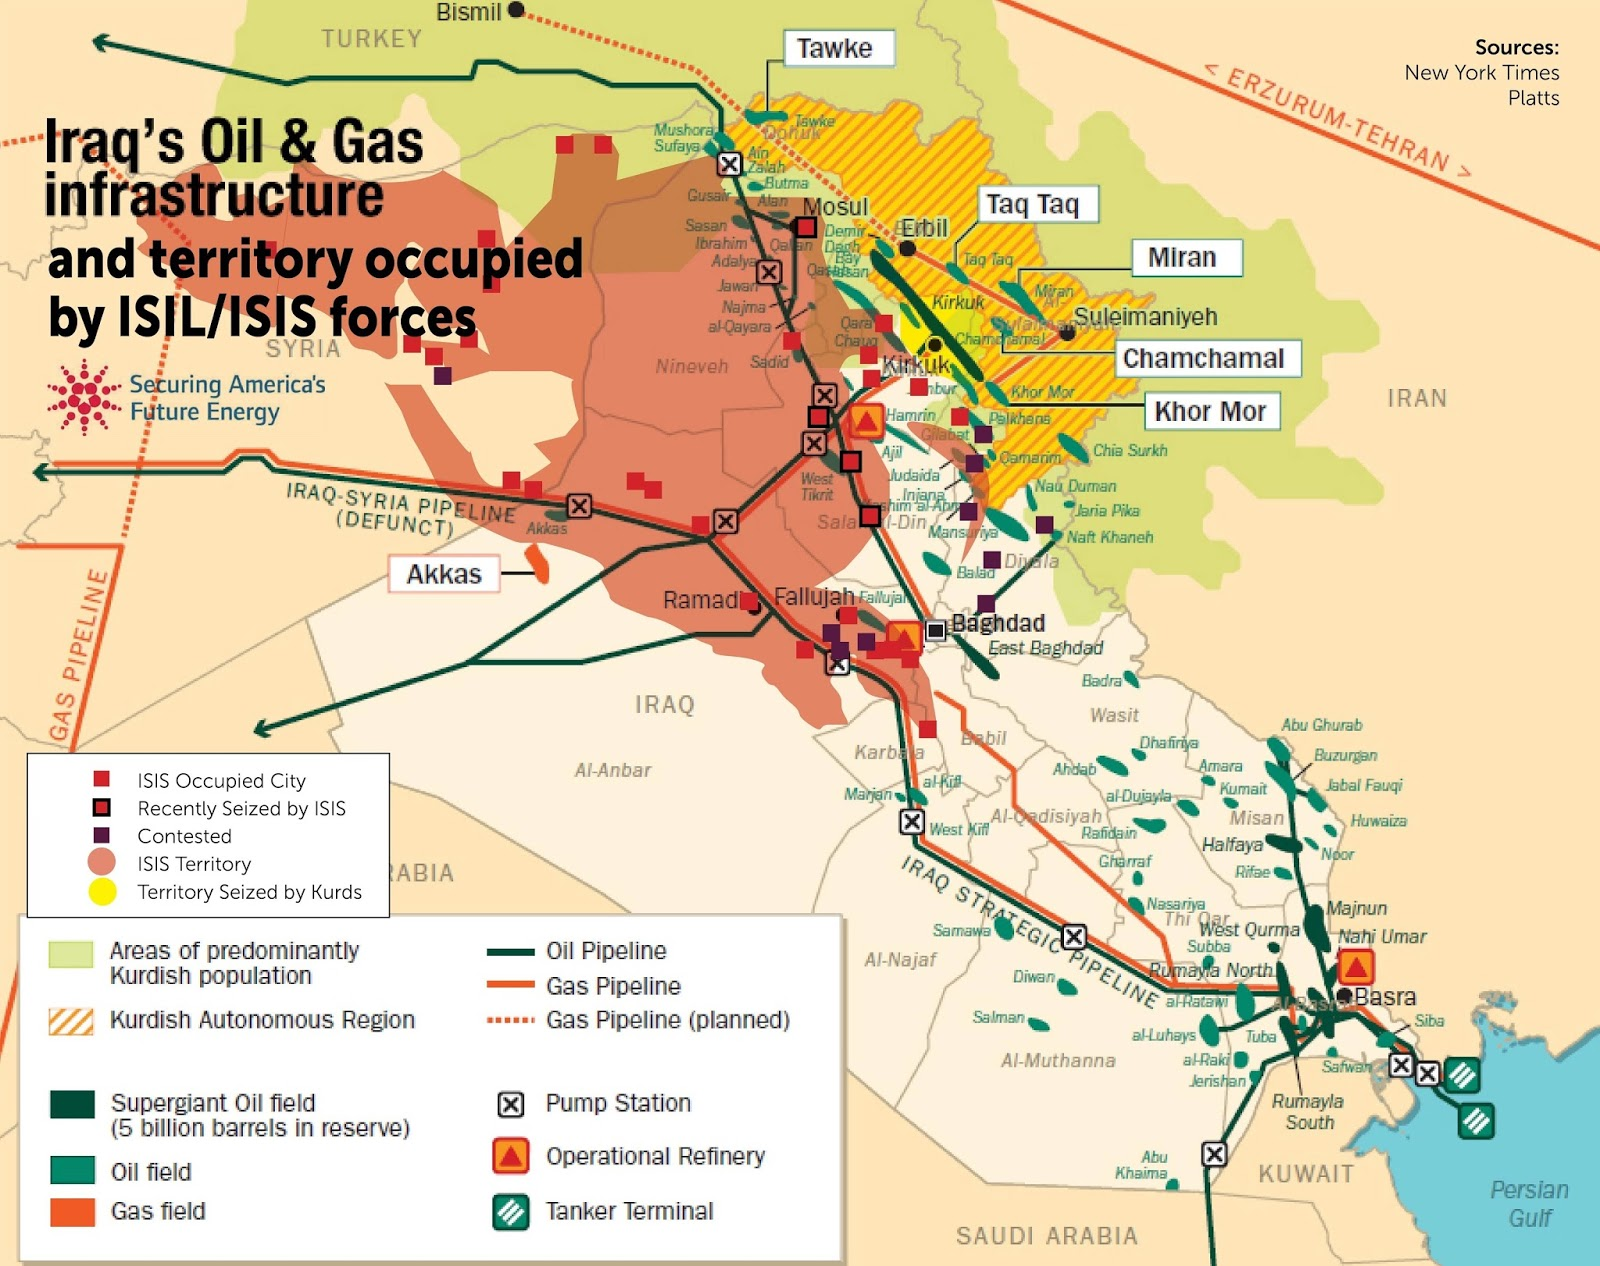 Iraq's oil and gas İnfrastructure & territory occupied by ISIS